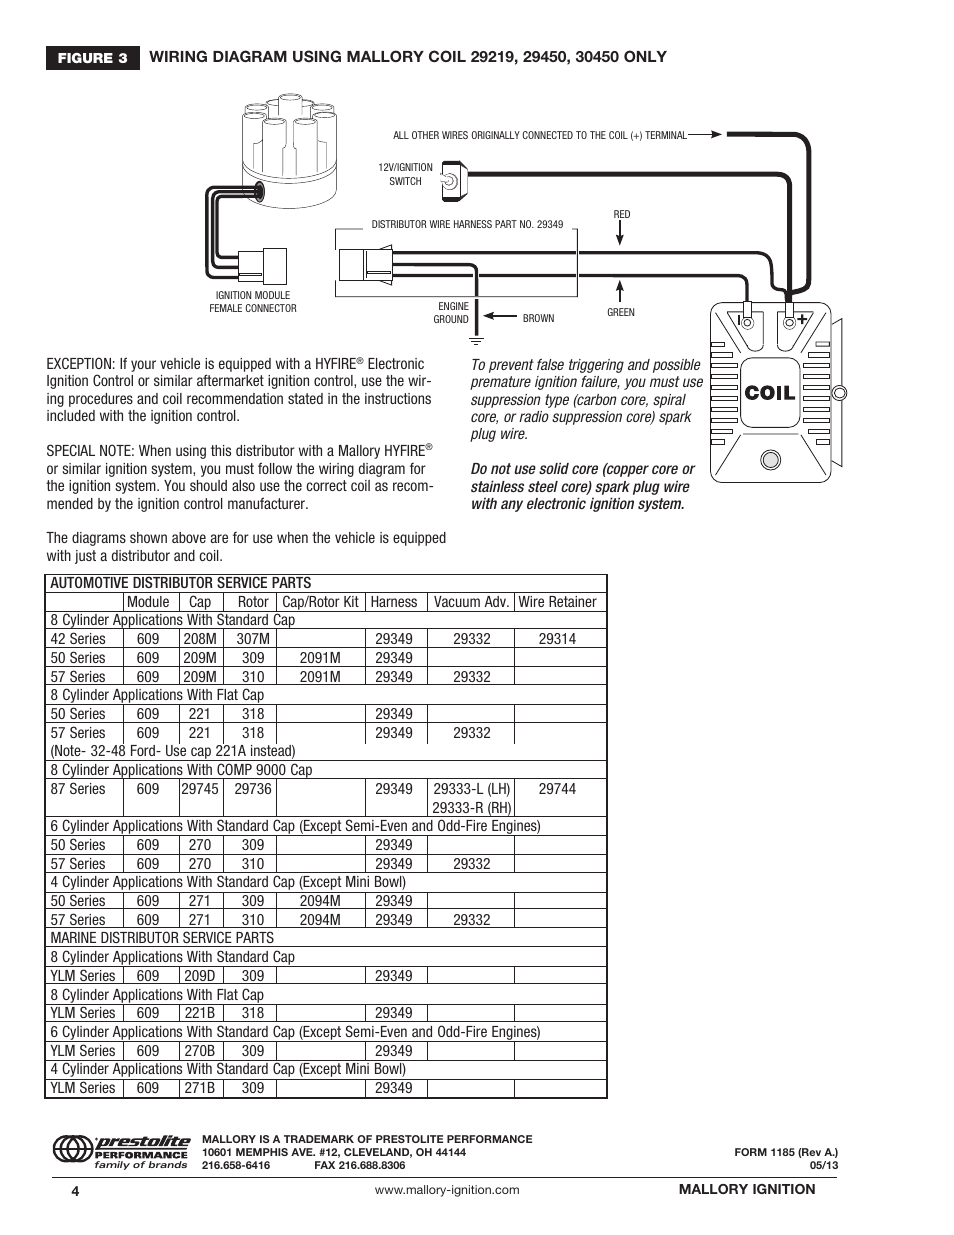 mallory distributor wiring diagram for capacitor run motor ignition magnetic breakerless 609 user manual | page 4 /